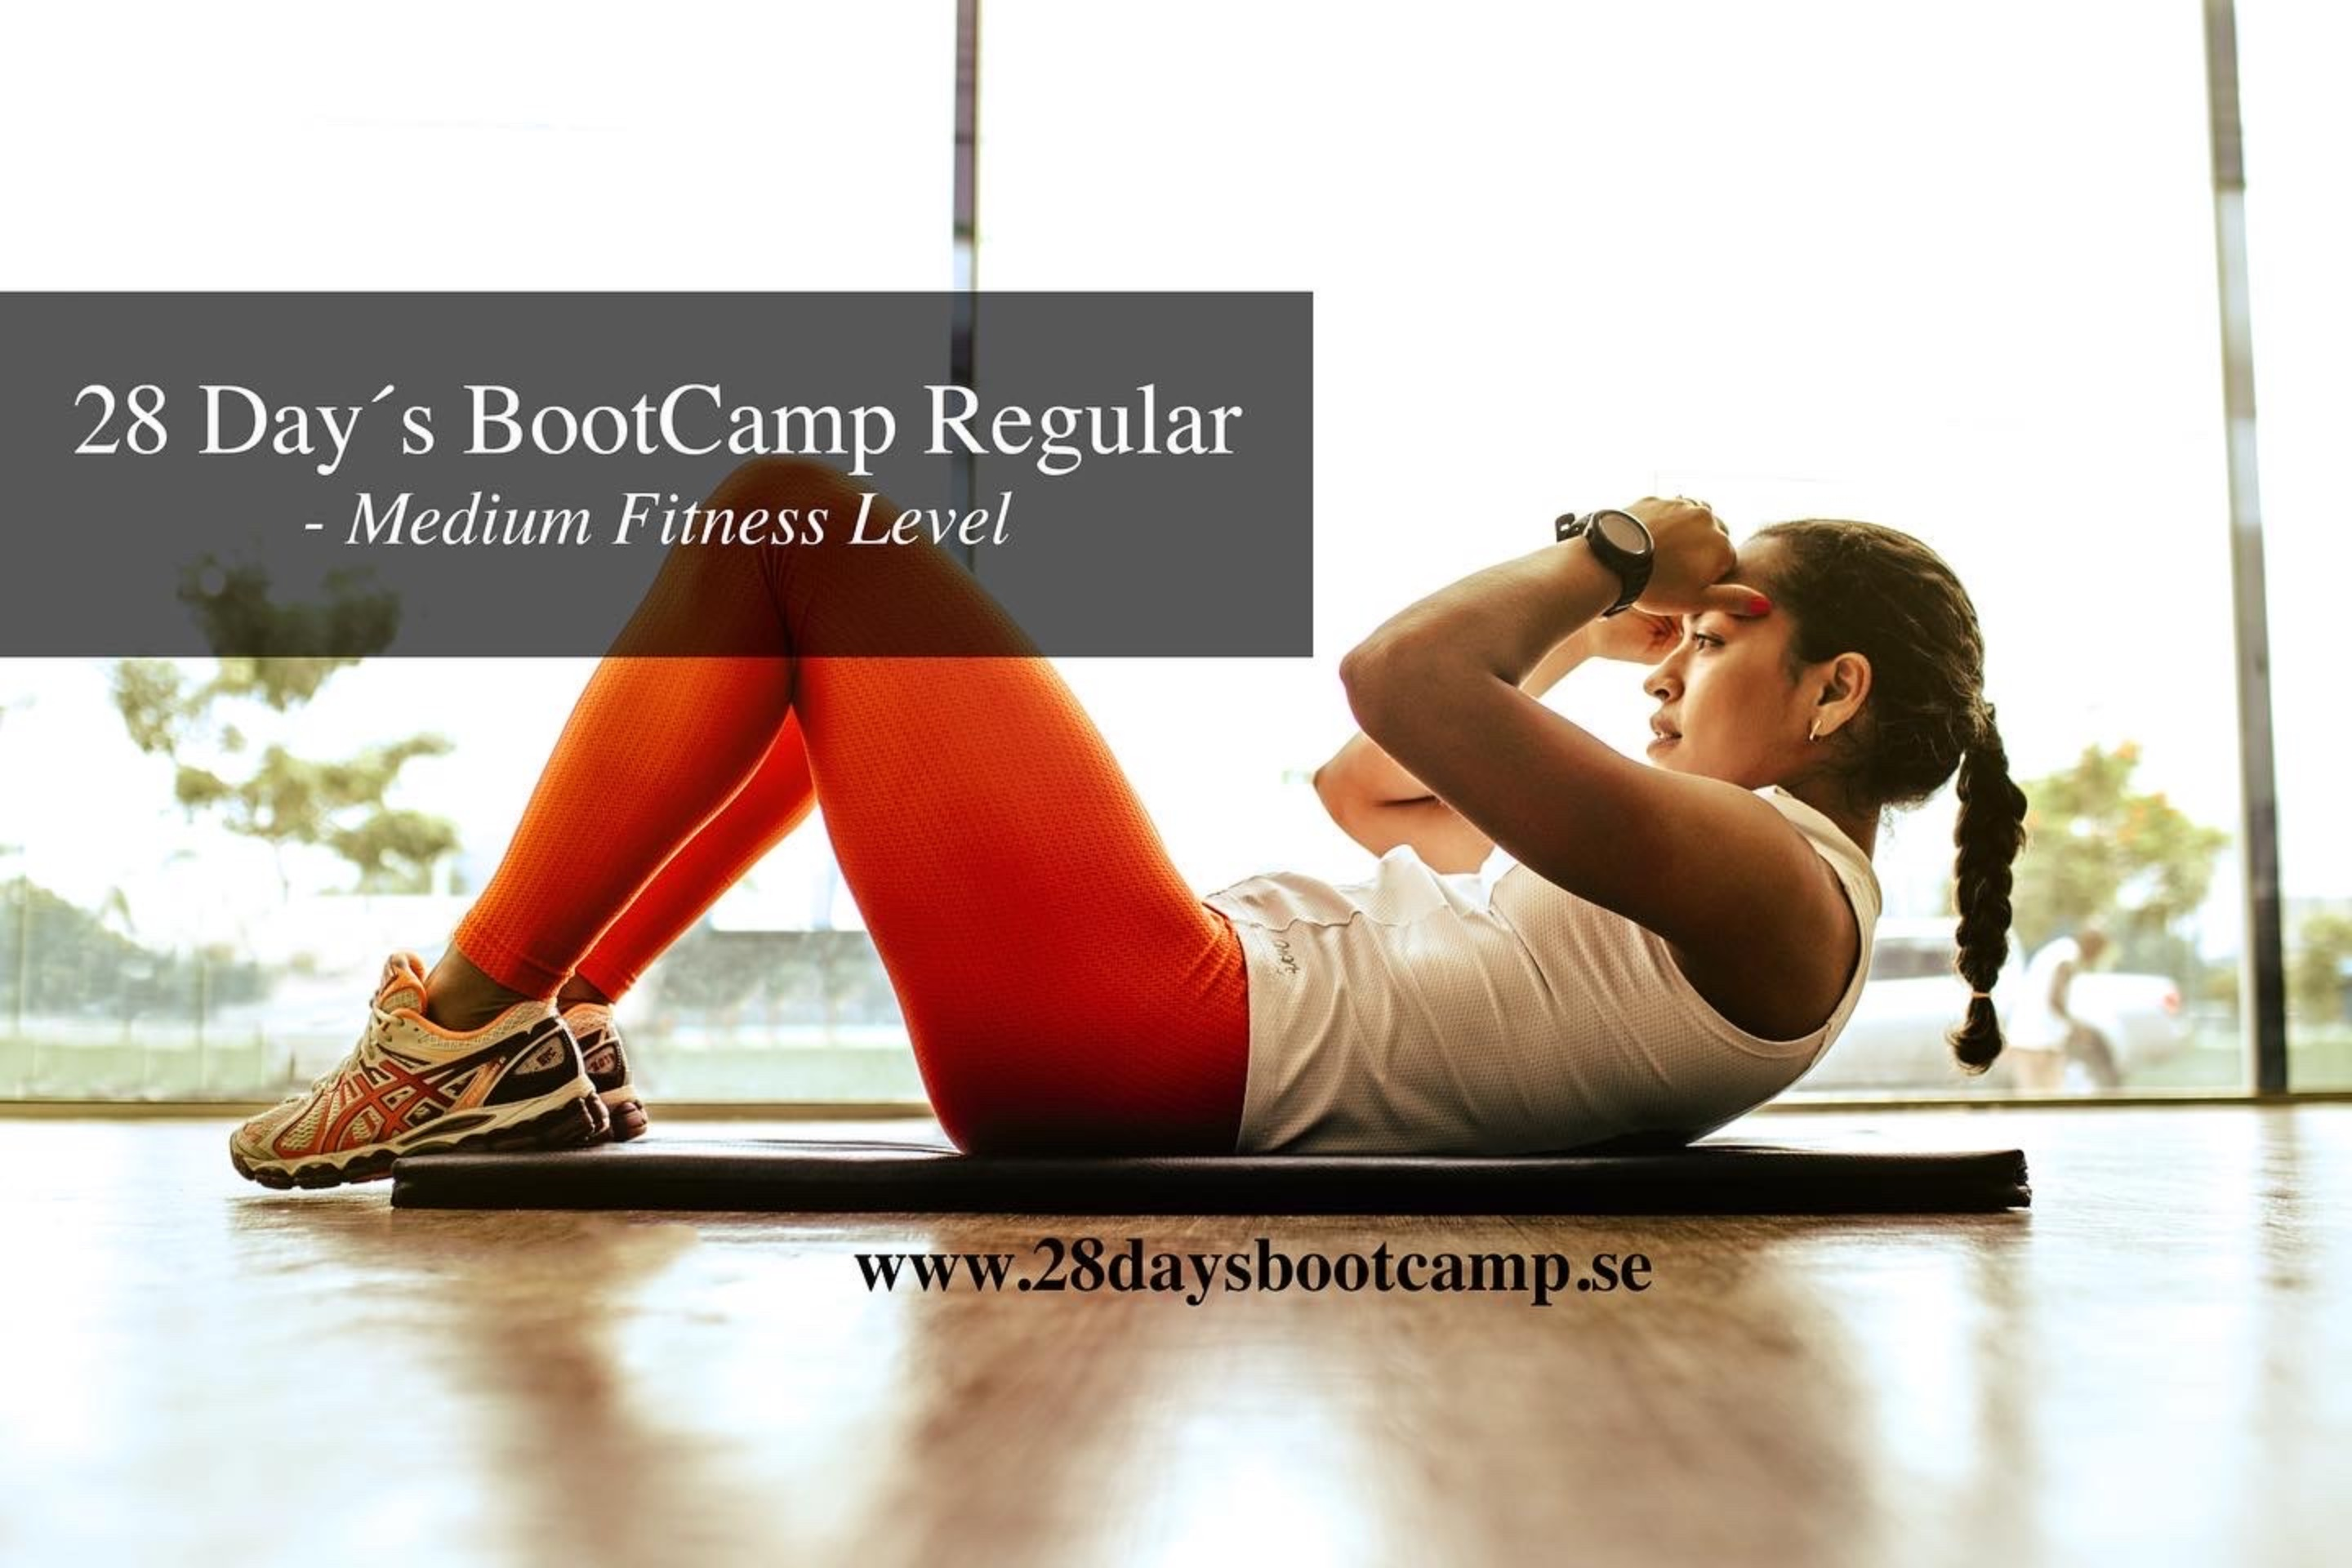 28 Day´s BootCamp Regular - Medium Fitness Level!